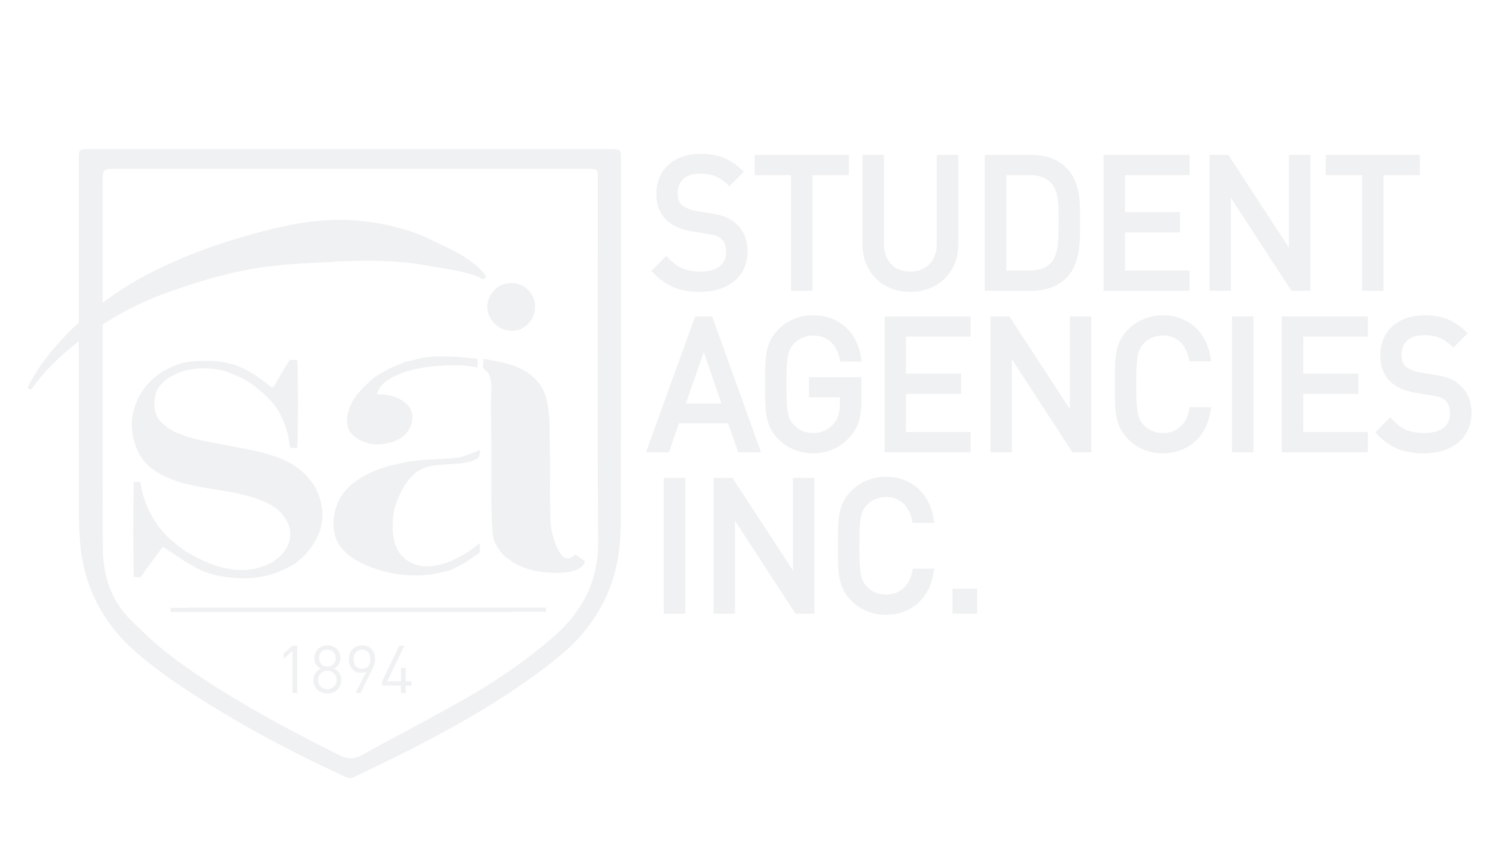 Student Agencies, Inc.